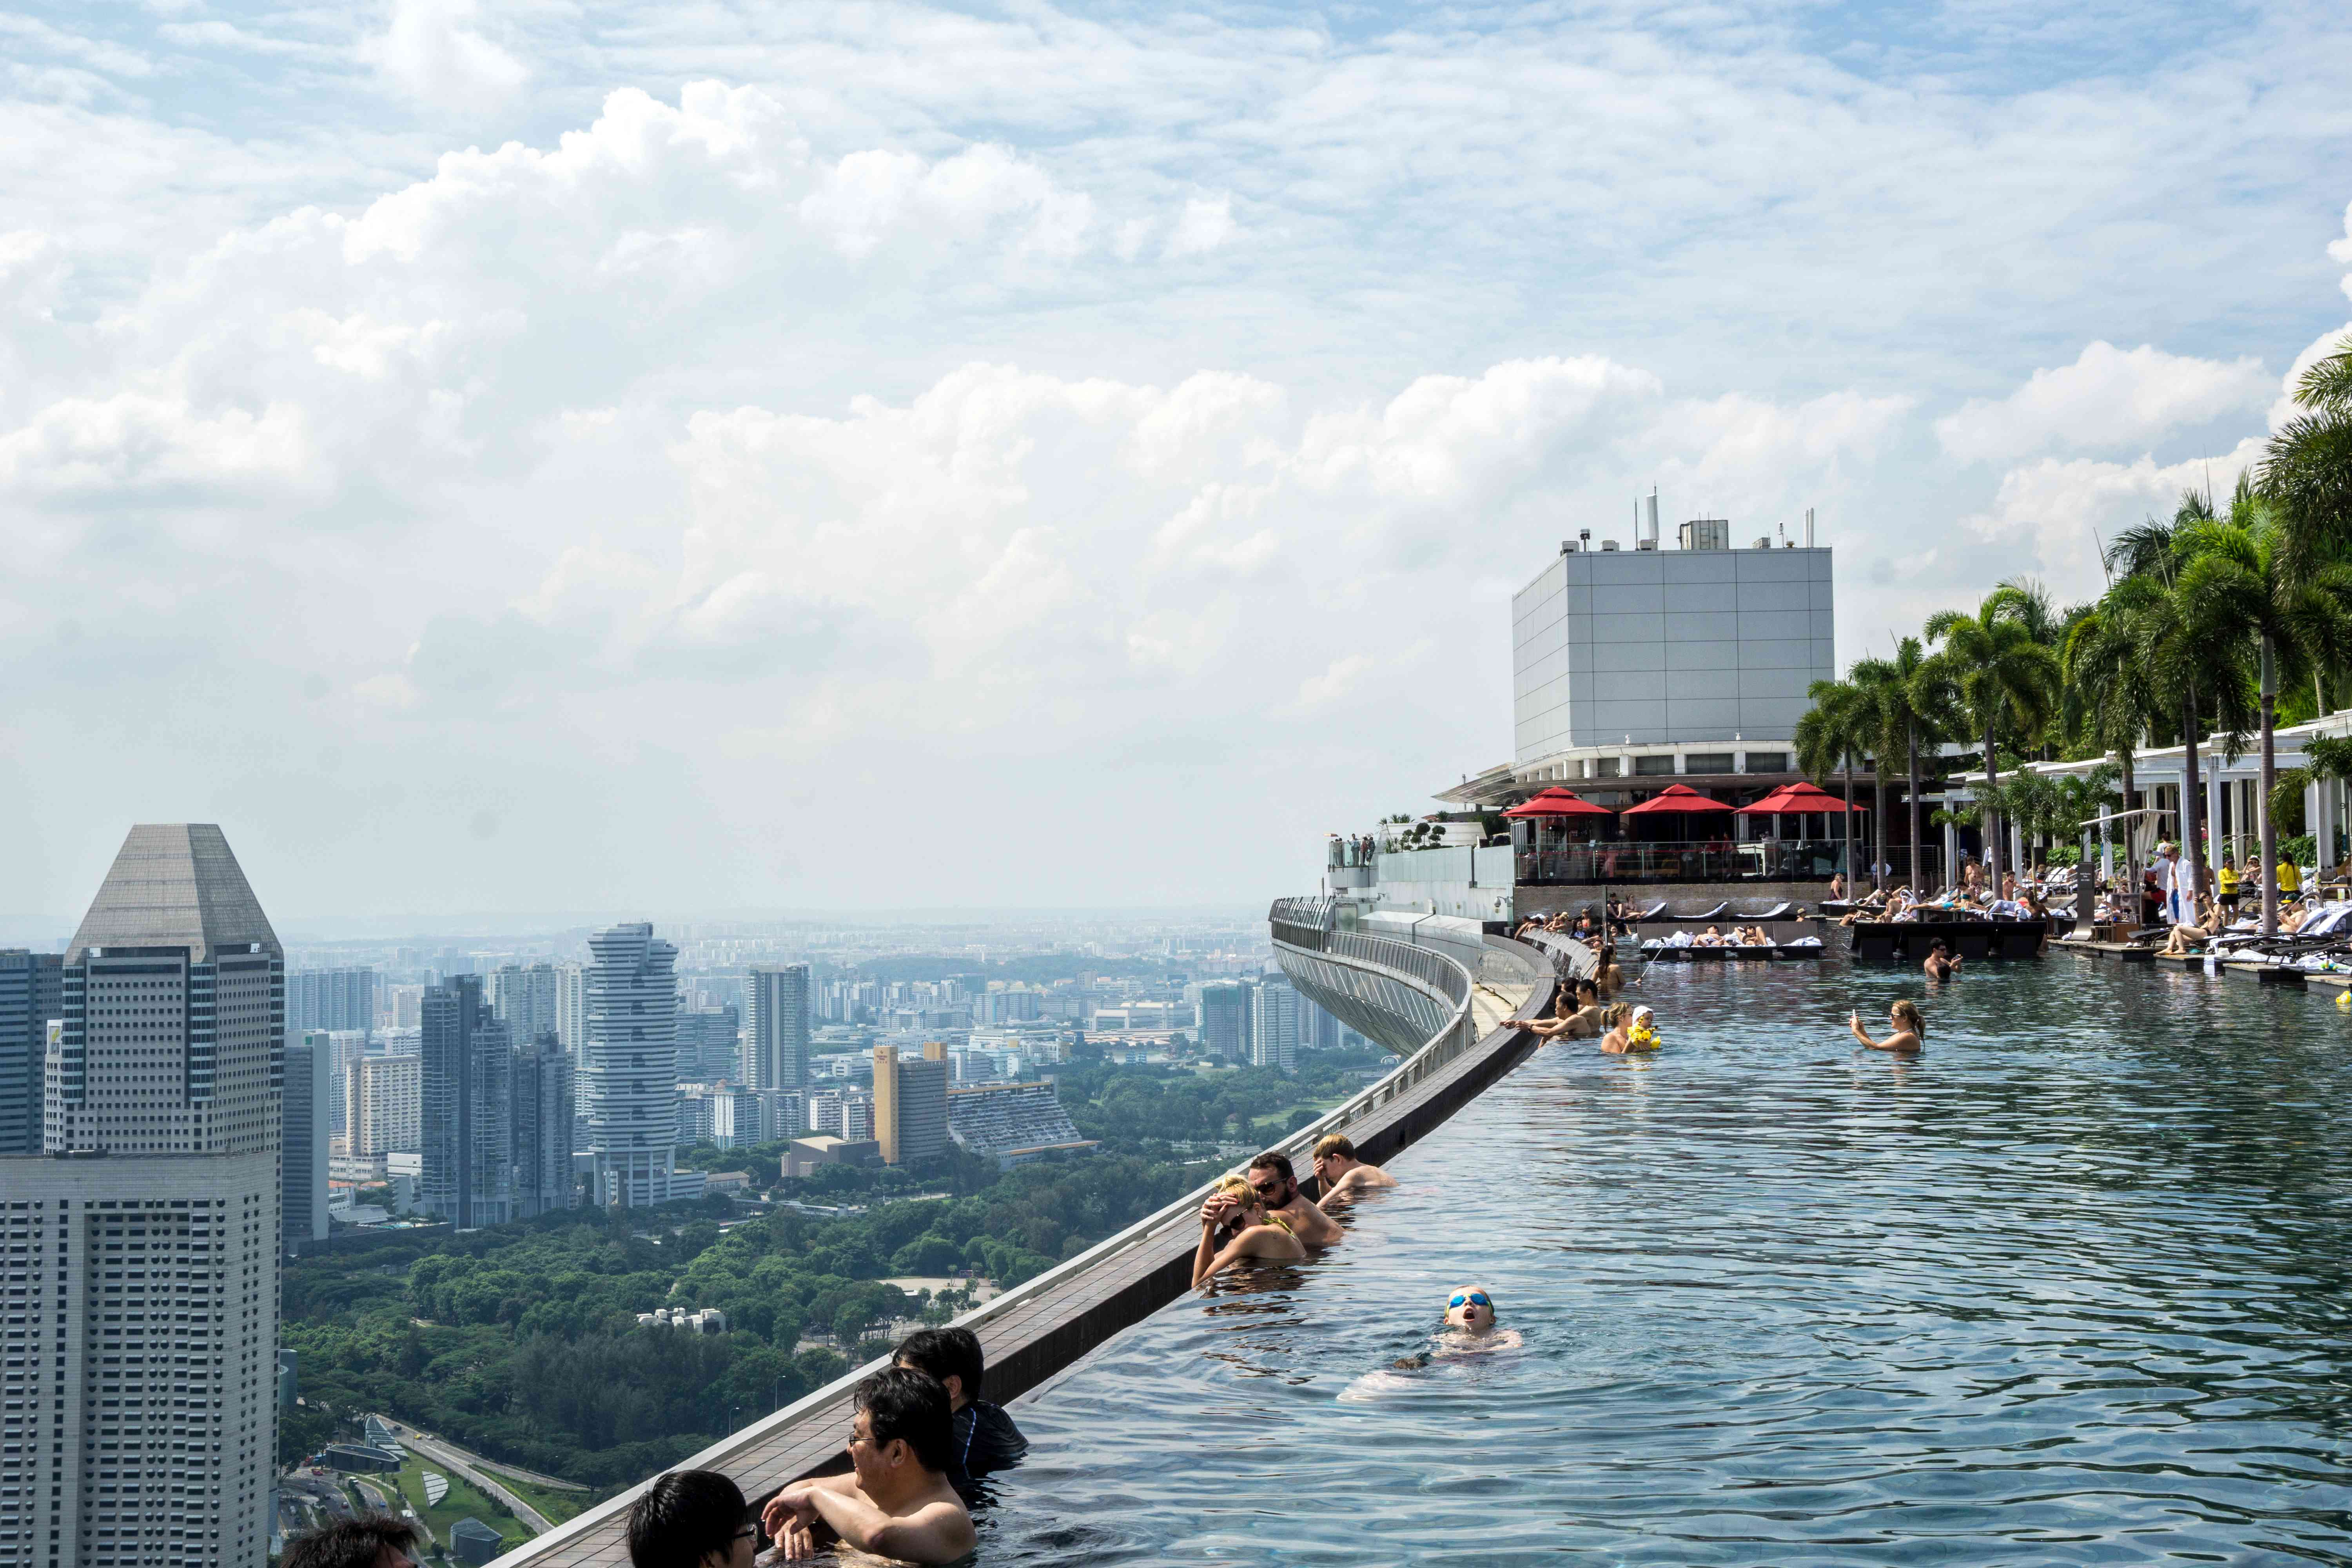 Swimmers take in the view at SkyPark Infinity Pool in Singapore.